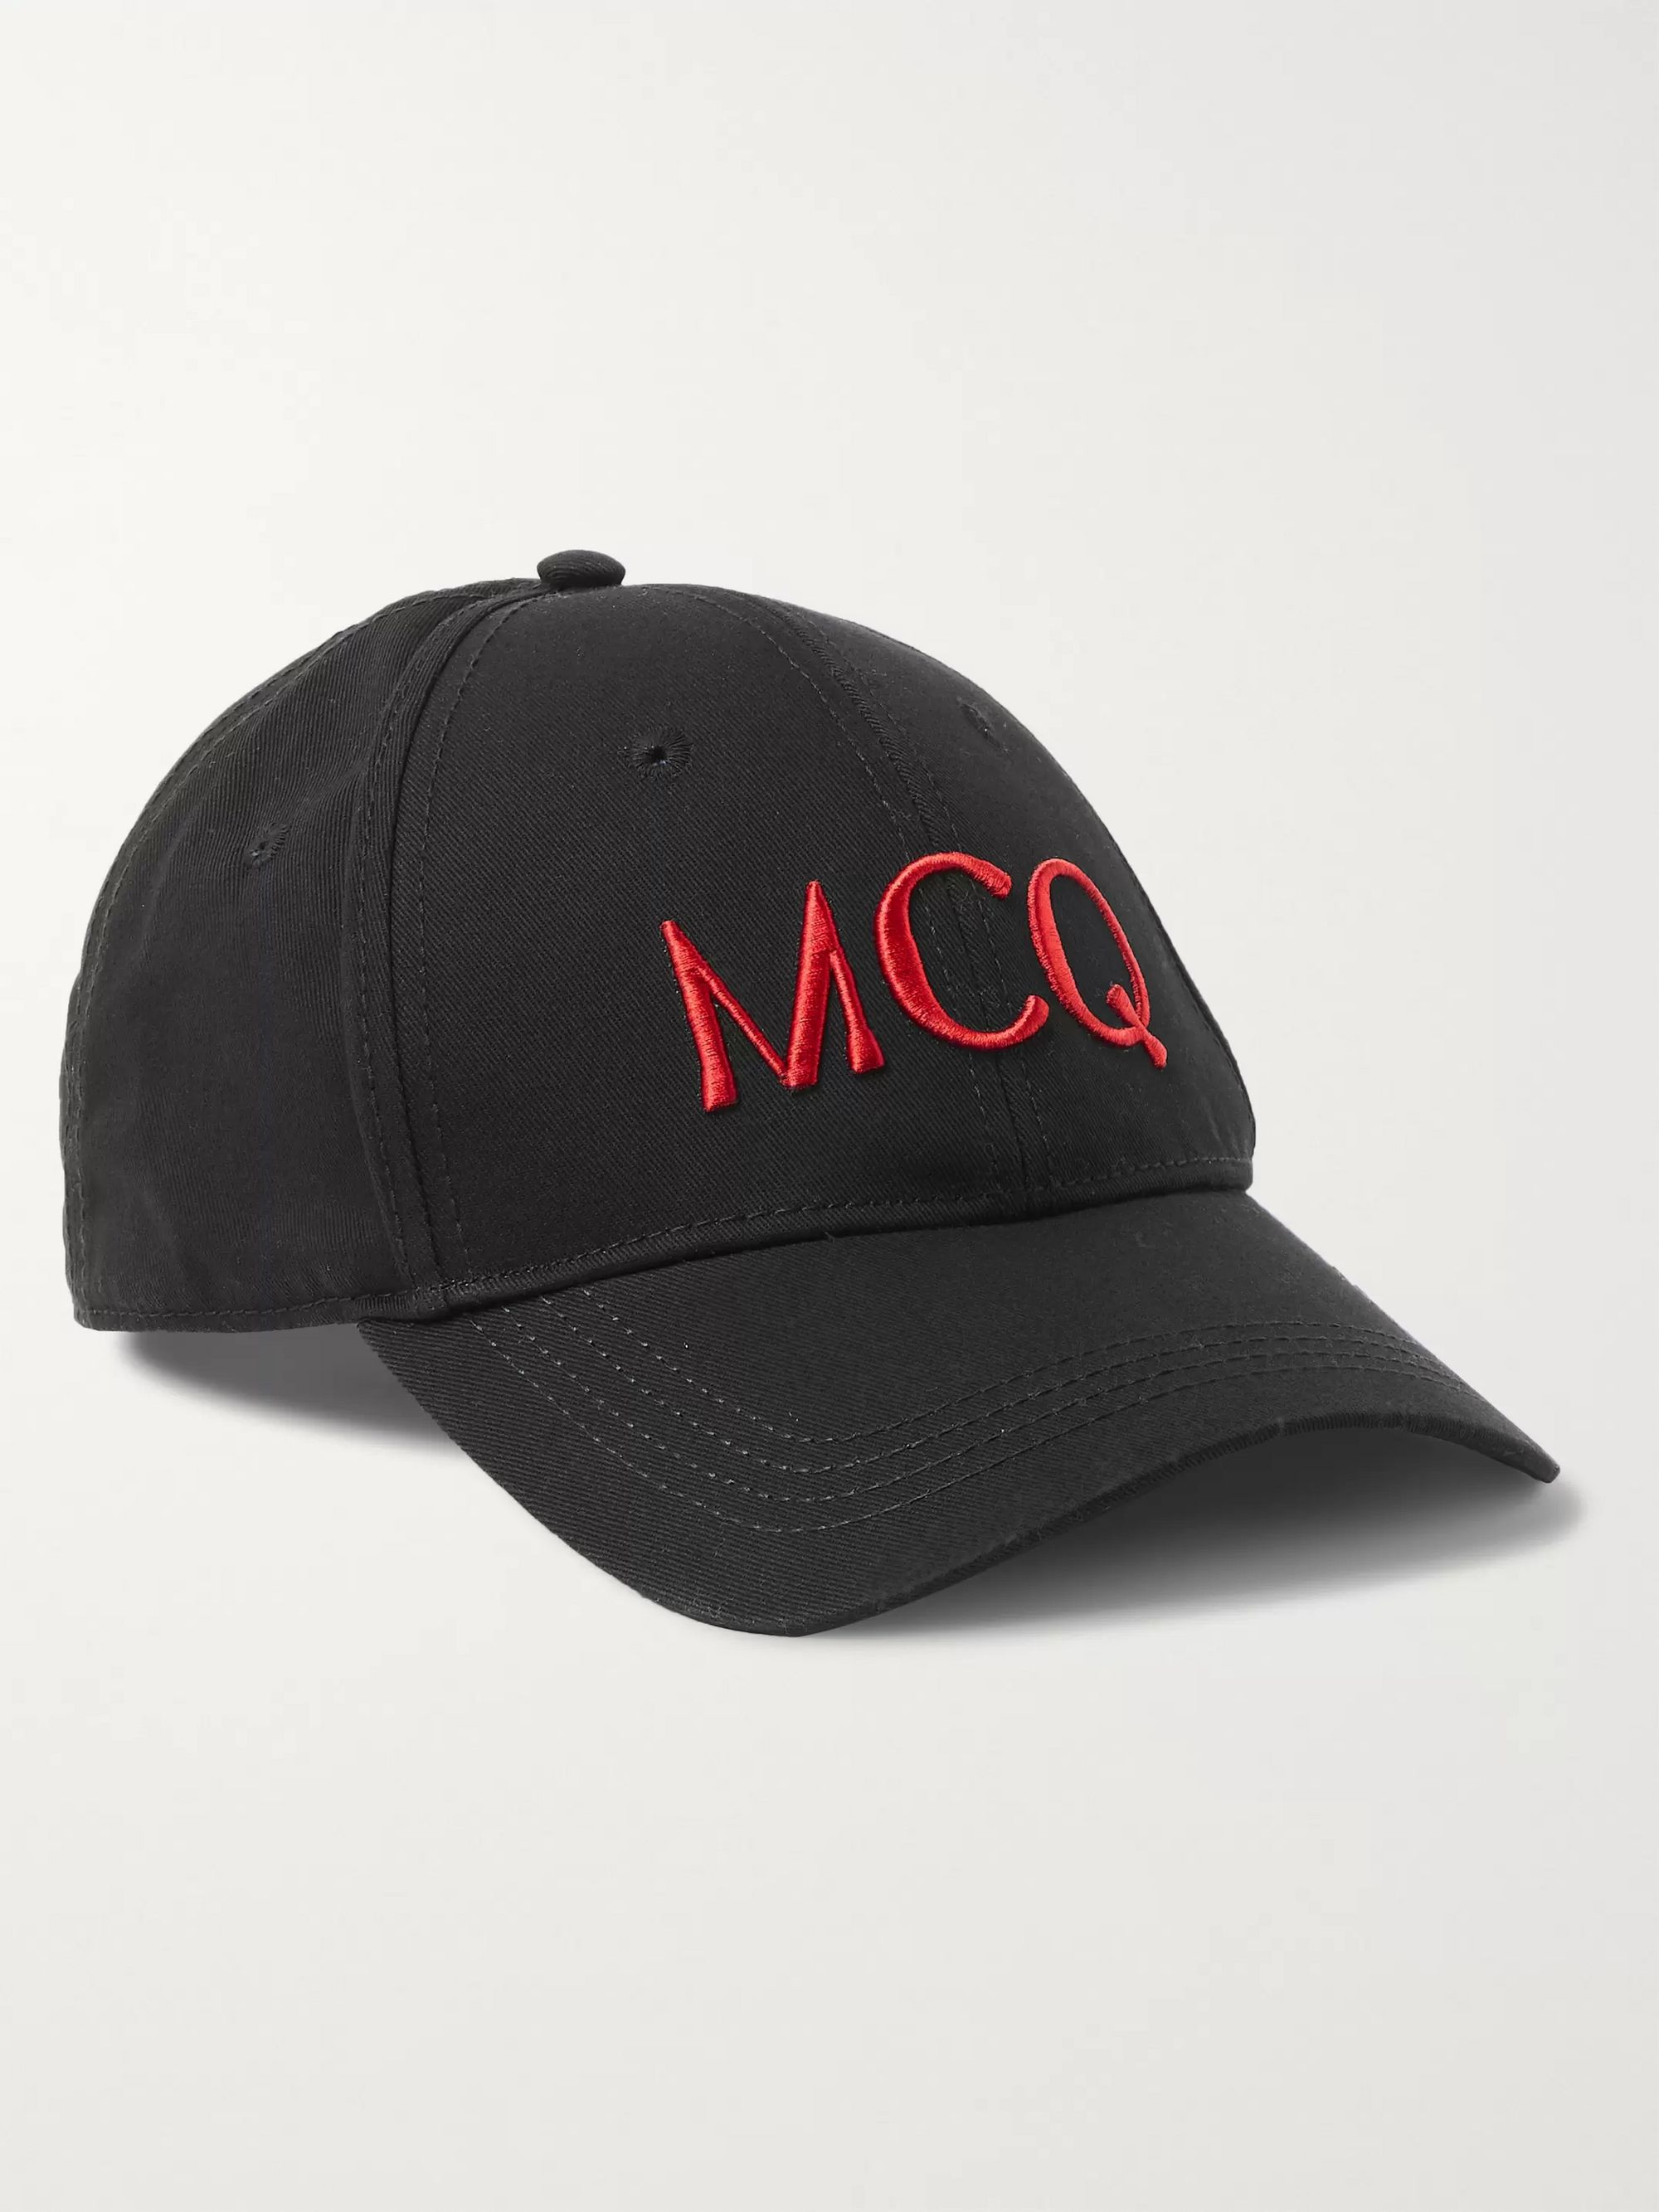 Logo Embroidered Cotton Baseball Cap by Mc Q Alexander Mc Queen